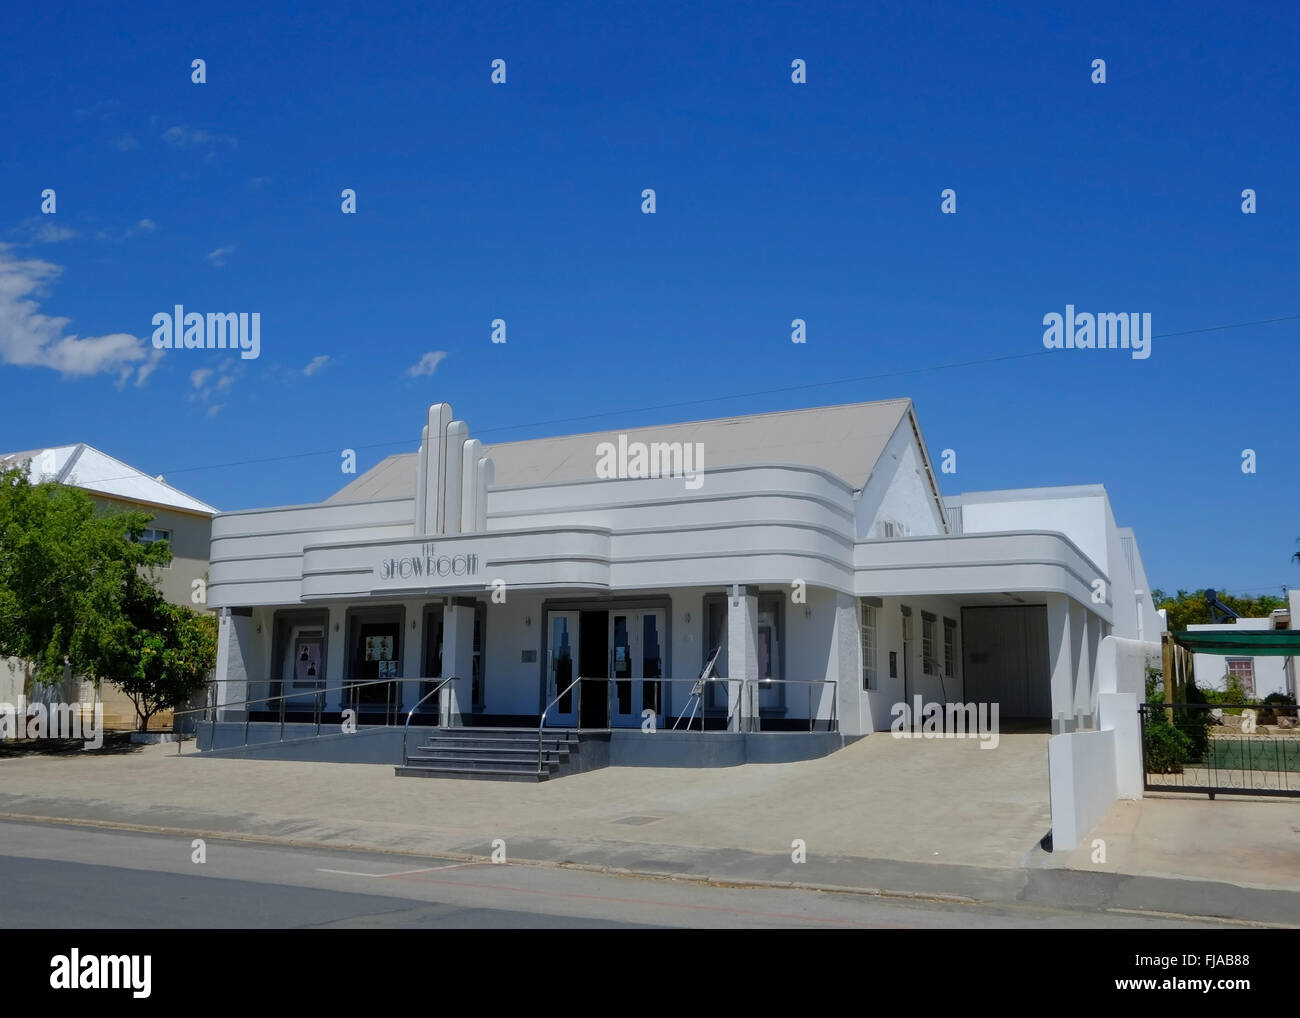 Art Deco Showroom Cinema and Theatre in Prince Albert, Klein Karoo, Western Cape, South Africa - Stock Image